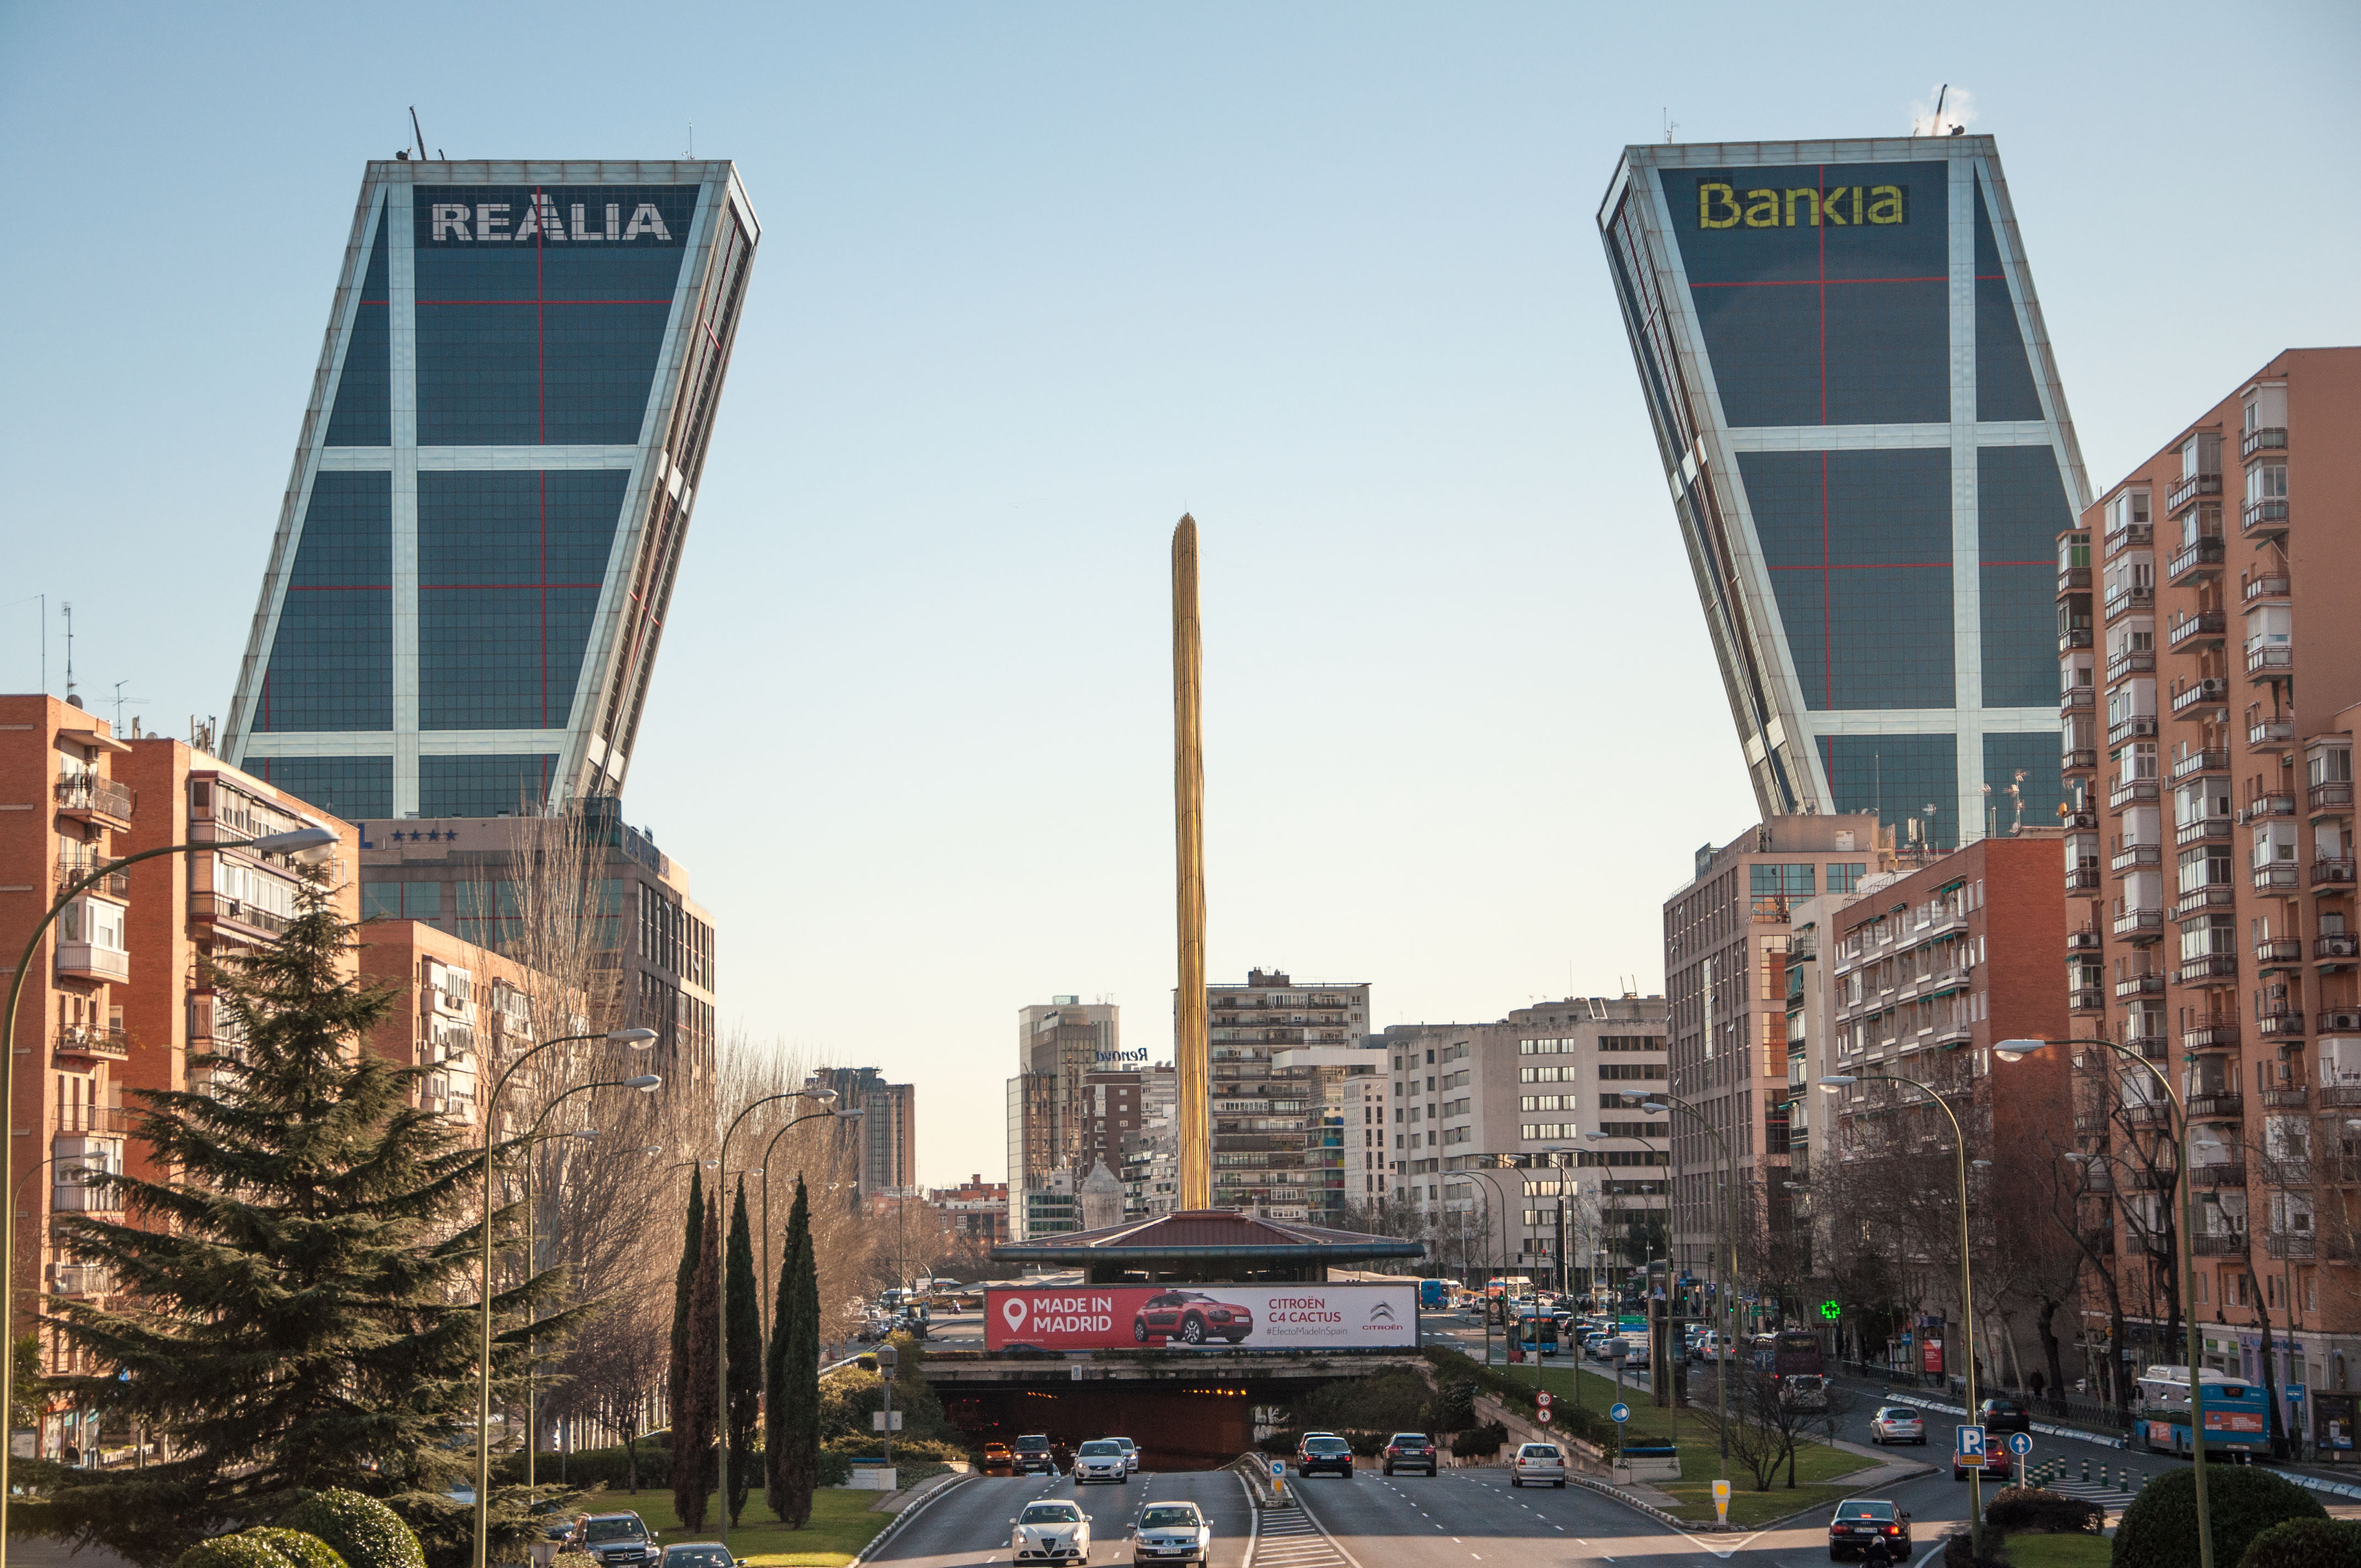 Madrid 39 s architecture from the 1960s to 2000s for Caja madrid particulares oficina internet